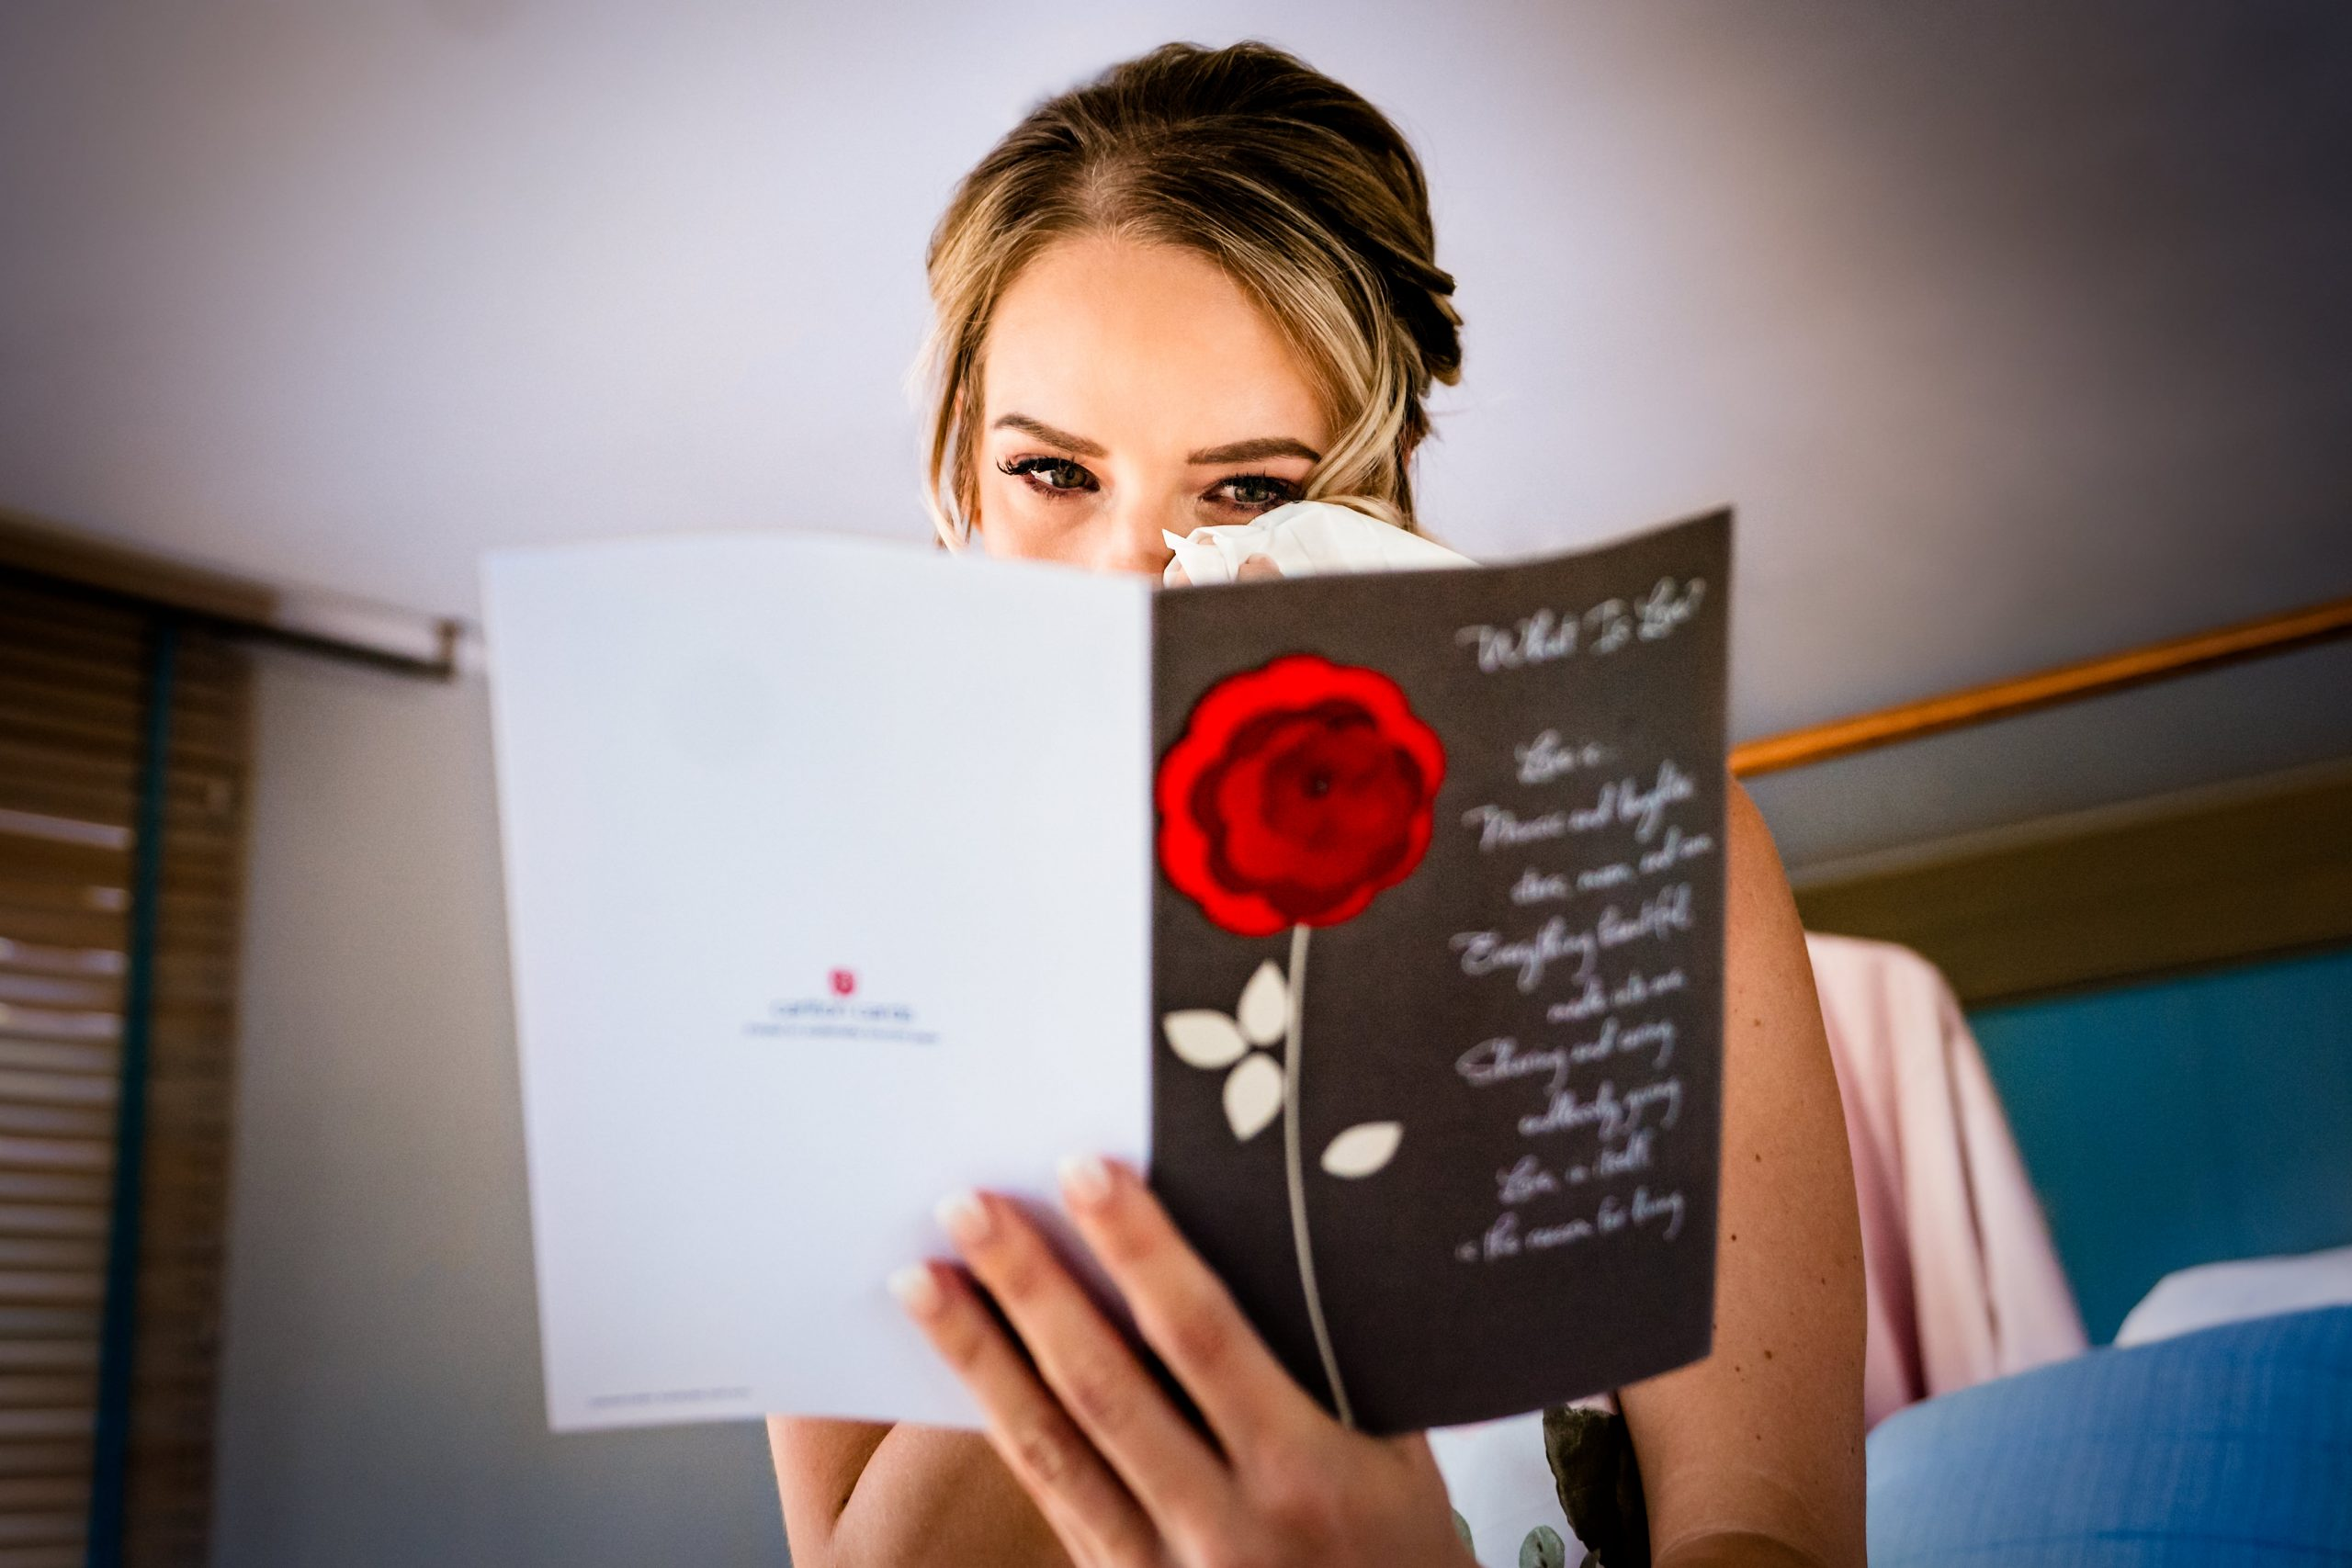 Bride wipes away tears while reading a congratulatory card.